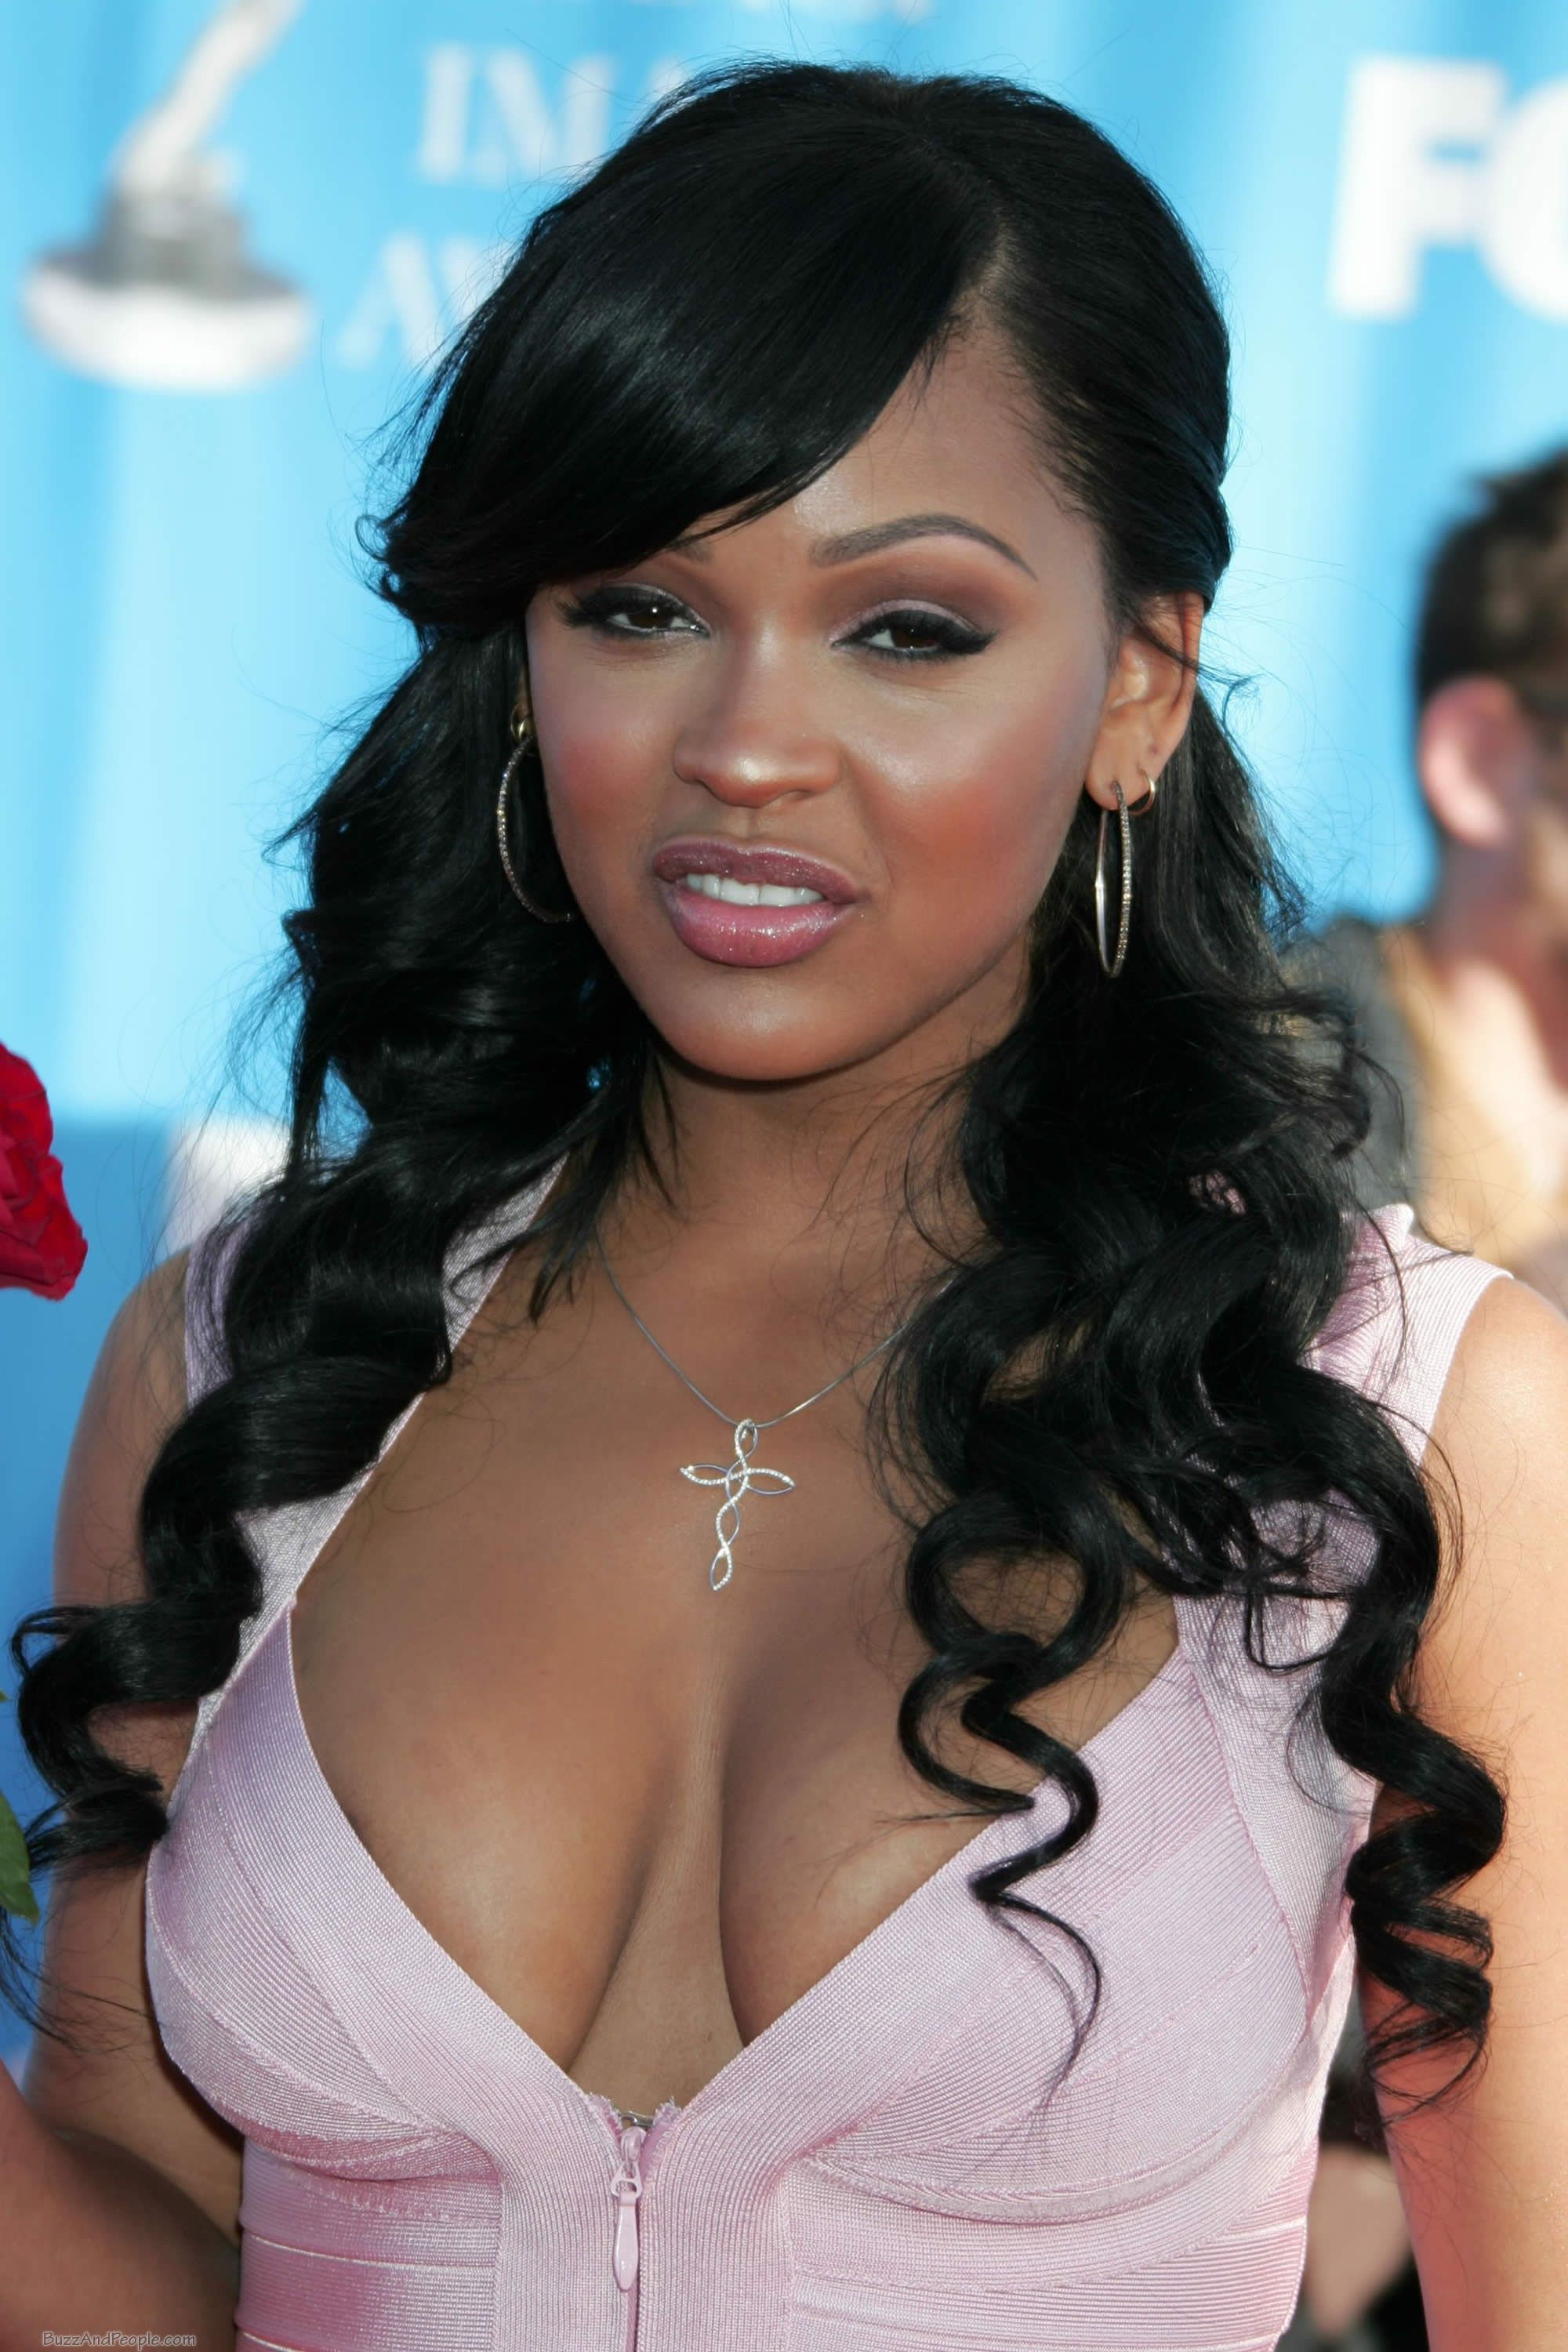 Meagan good californication scene